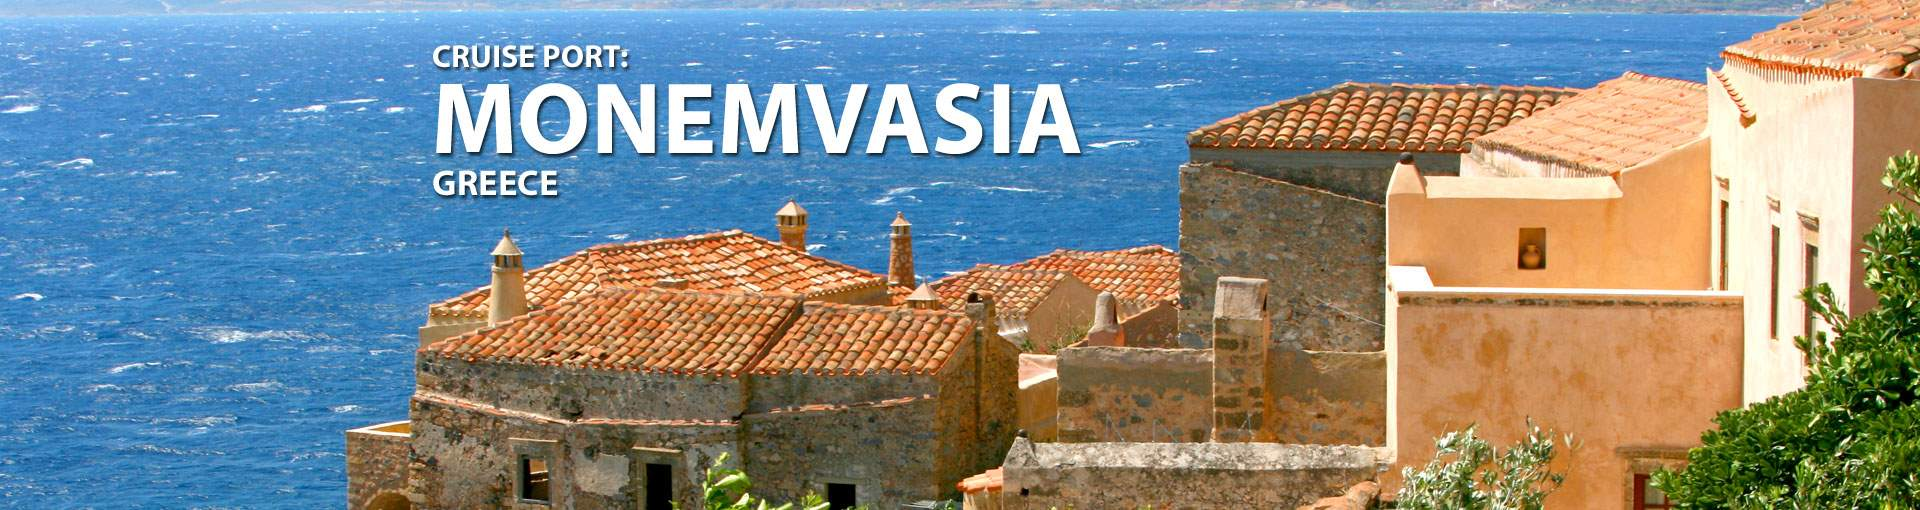 Cruises to Monemvasia, Greece